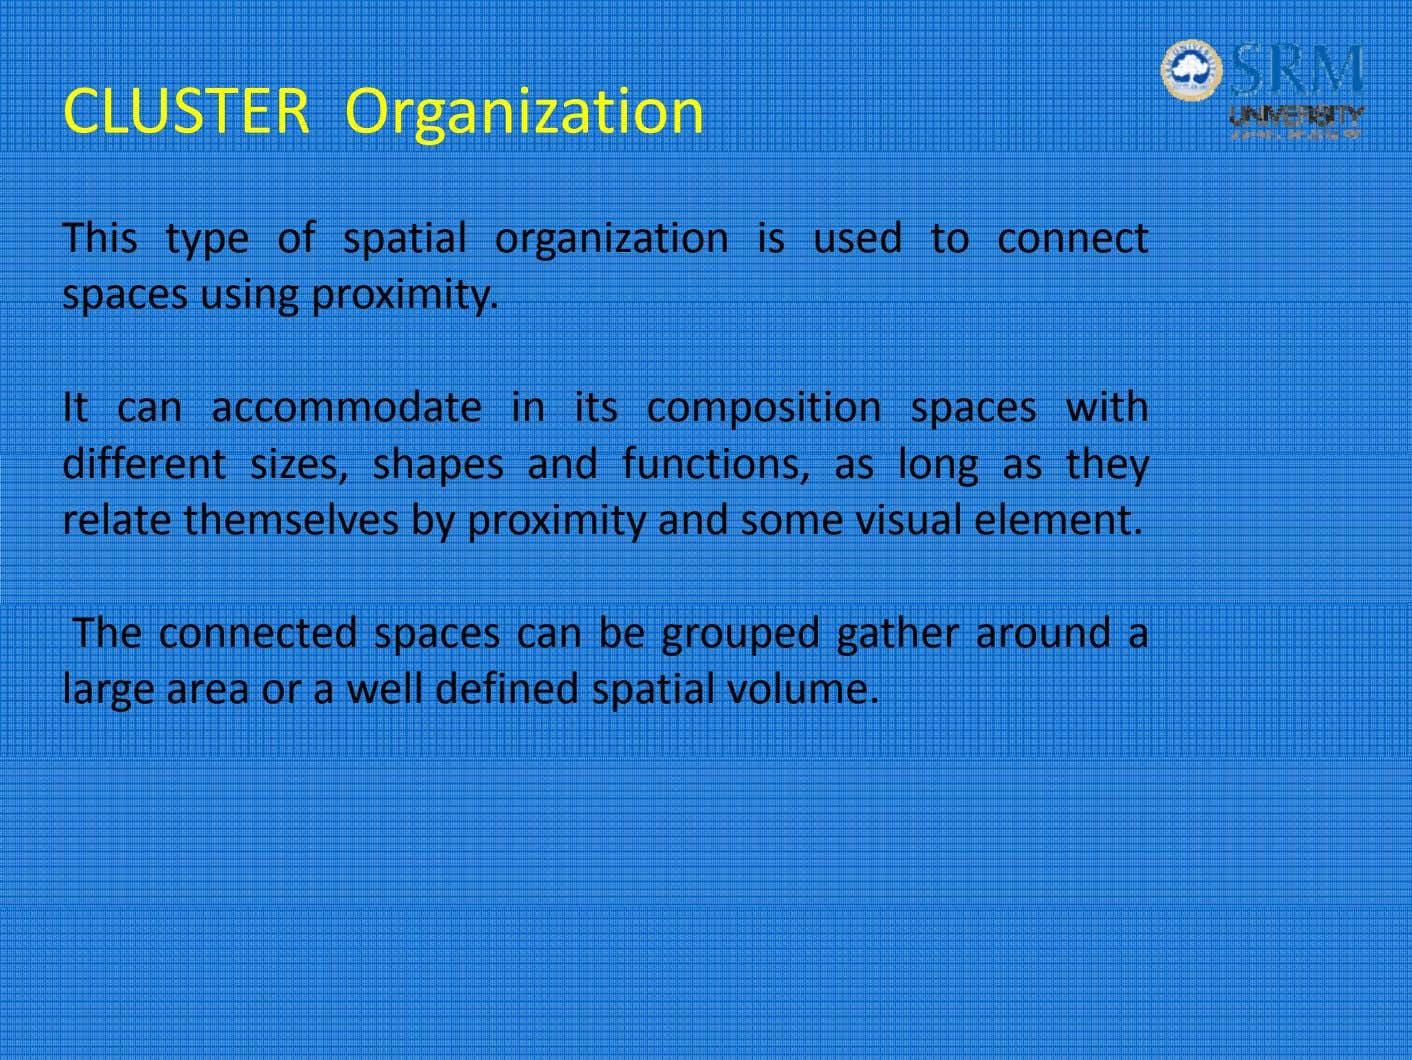 CLUSTER Organization This type of spatial organization is used to connect spaces using proximity. It